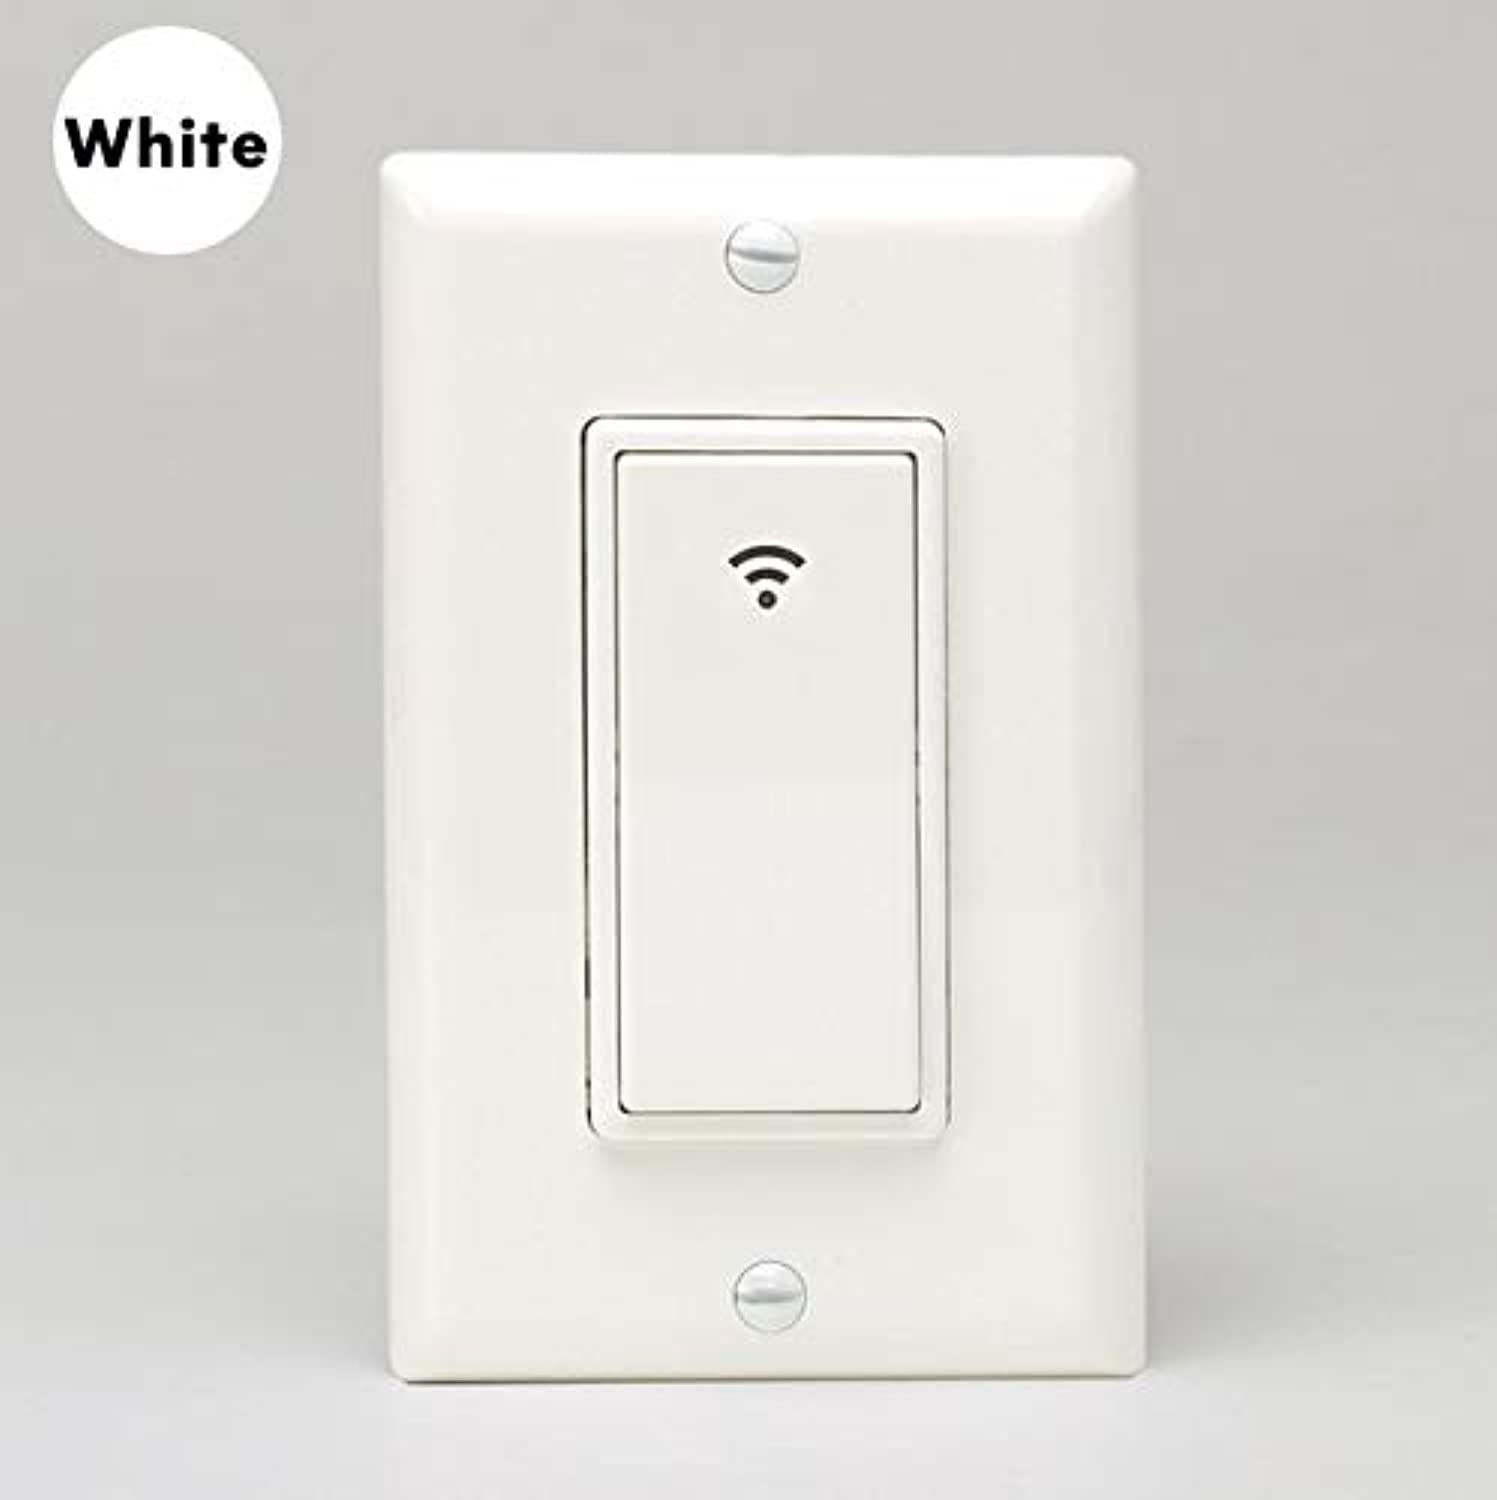 US WiFi Smart Wall Light Switch Mobile APP Voice Control with Alexa Google Home Push Button 10A No Hub Required(color  SS118-White)